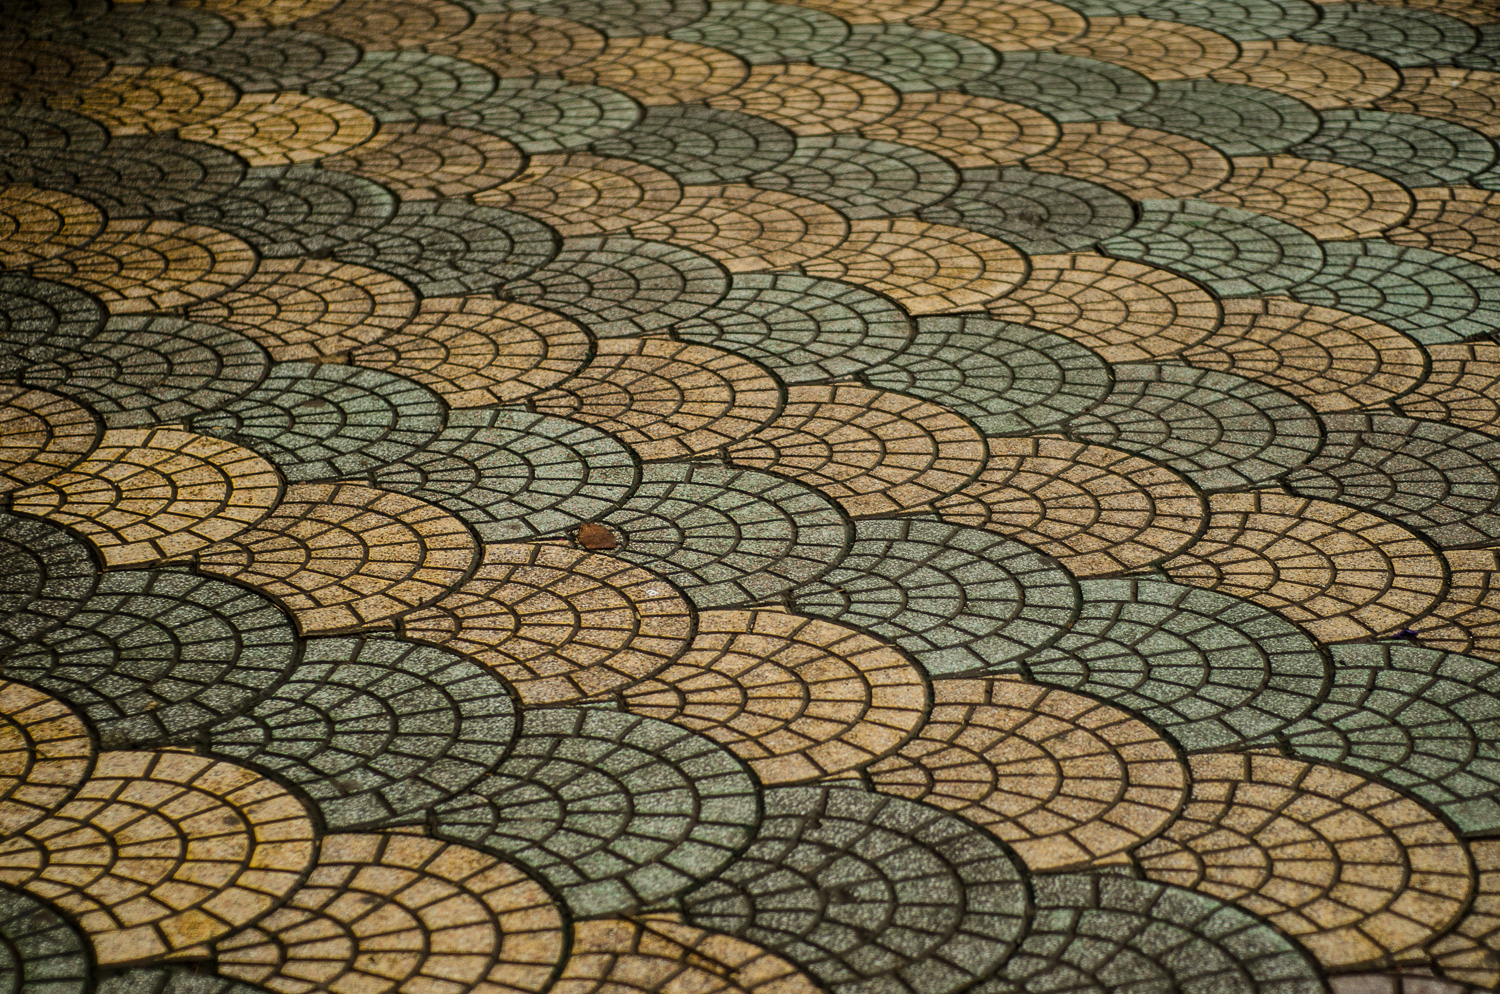 hanoi-temple-of-literature-paving-stones.jpg